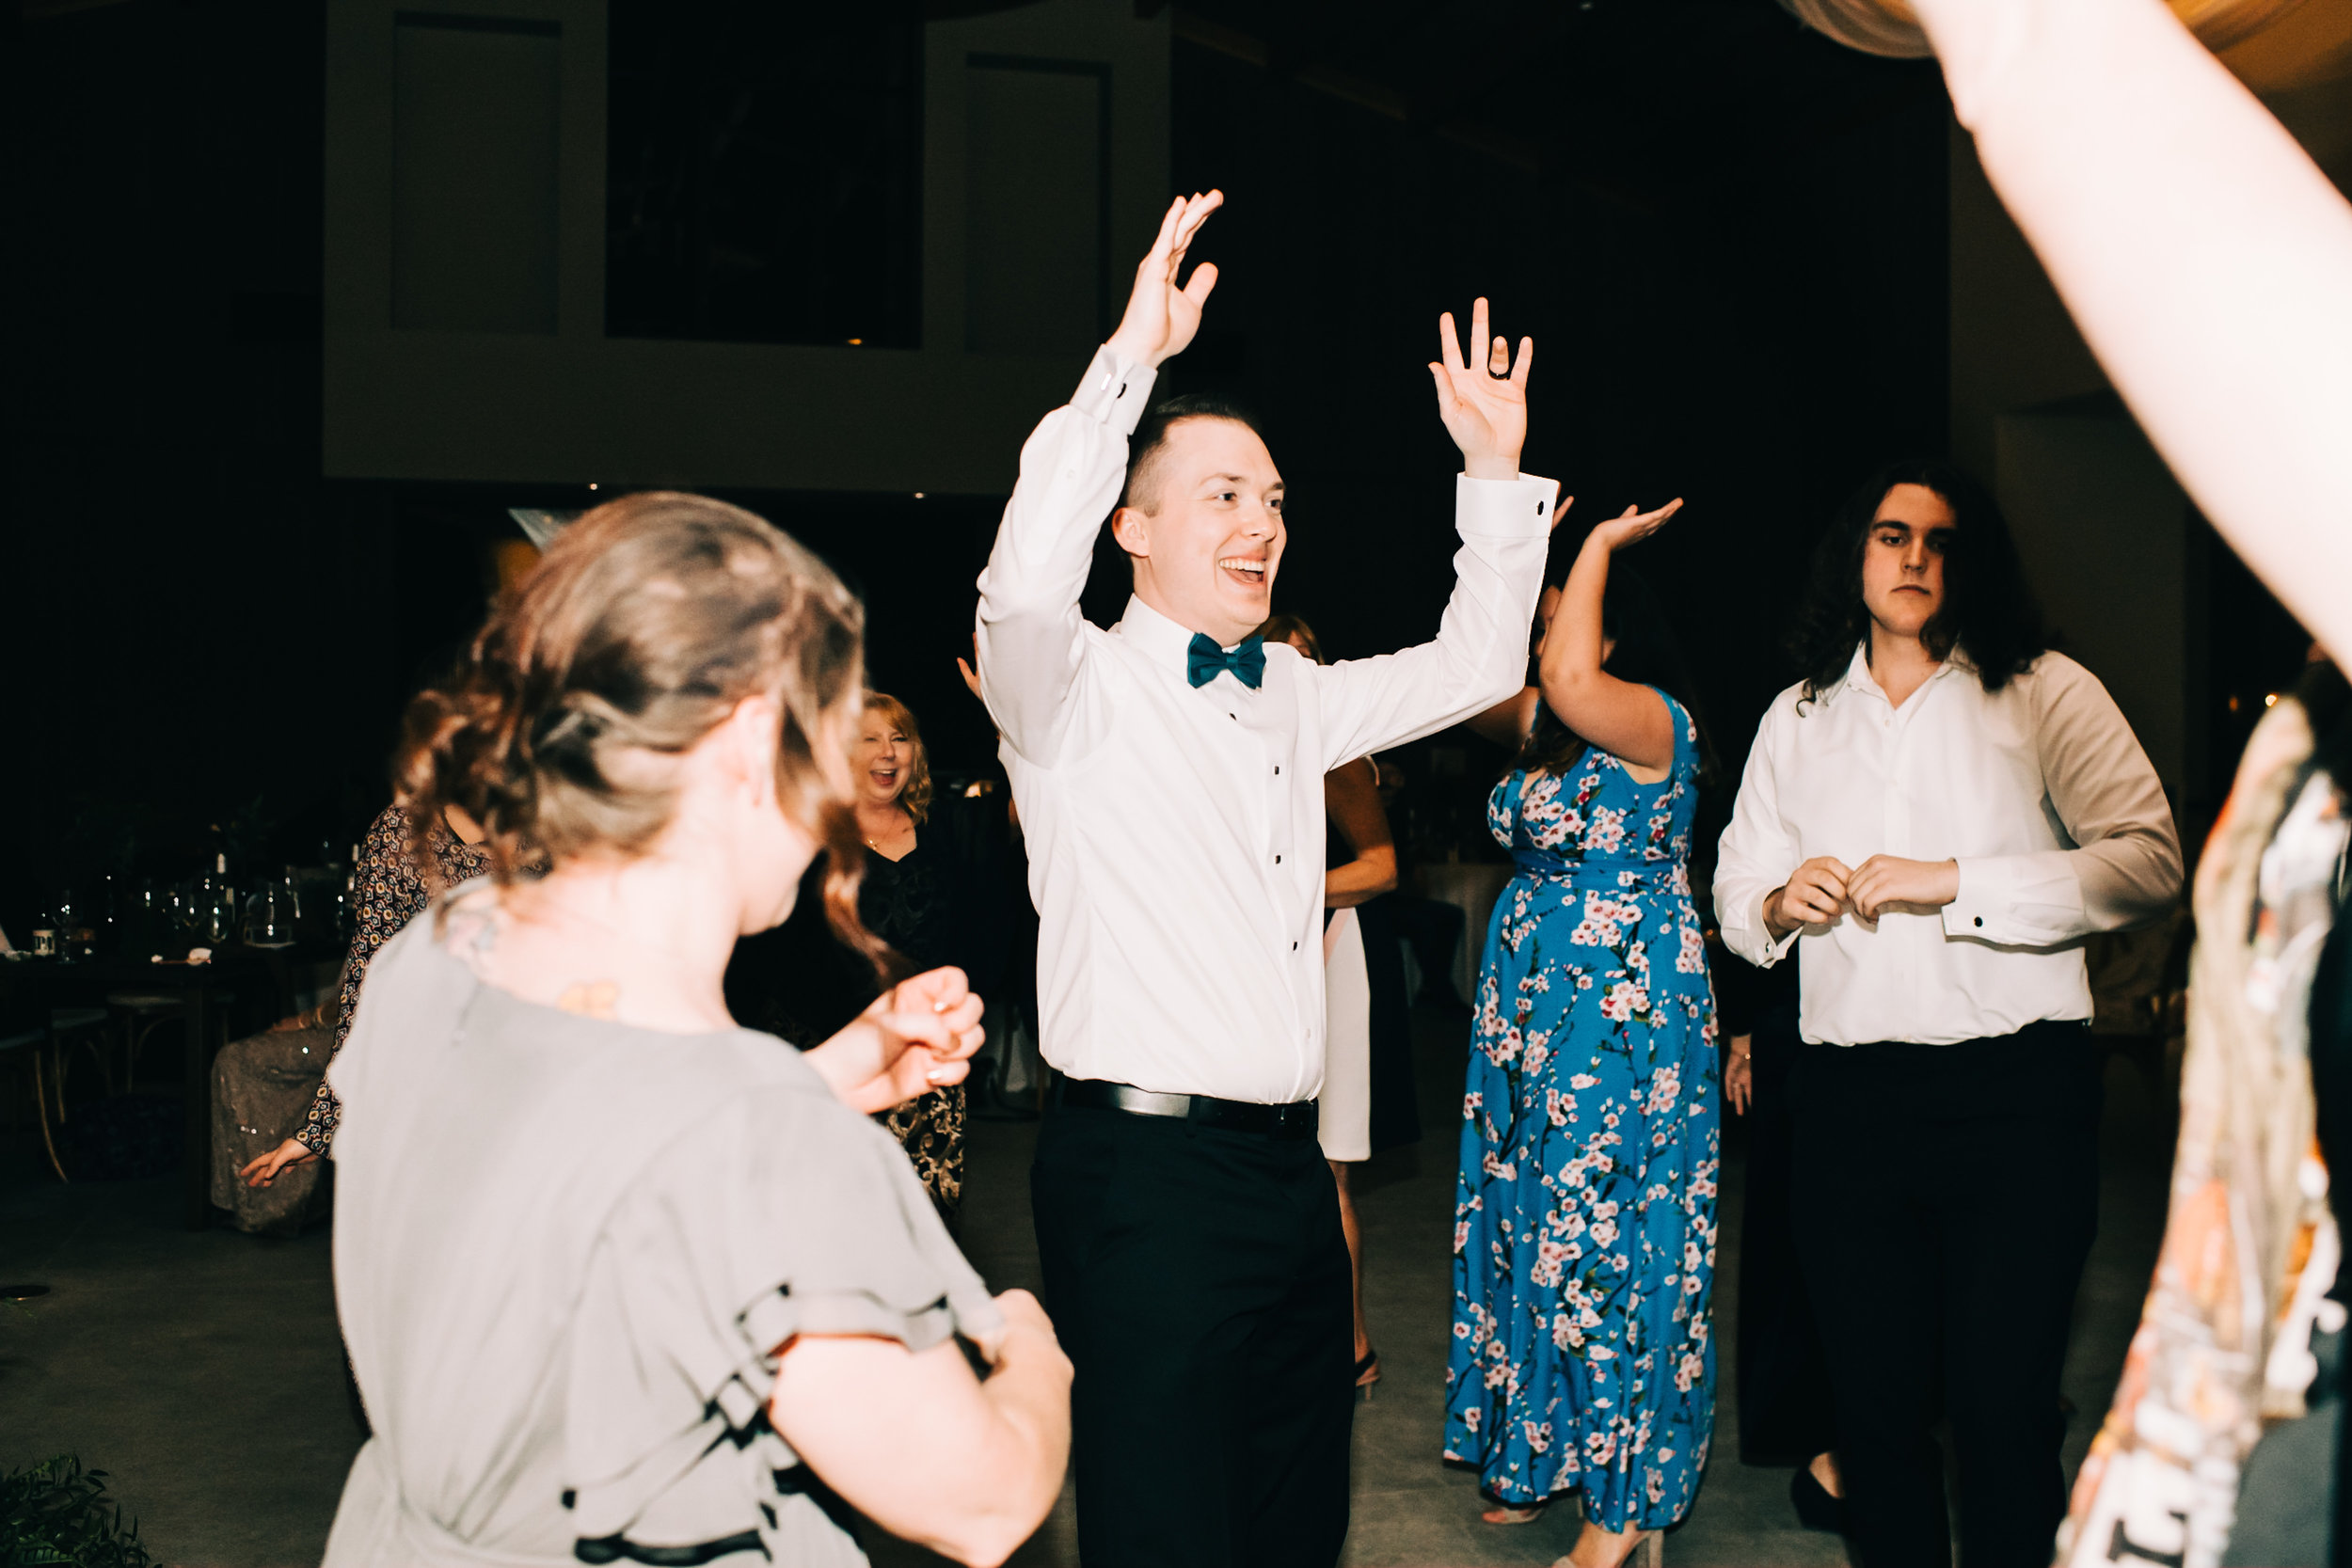 bay area nontraditional wedding photographer southern california boho wedding love light magic san francisco oakland northern california-1322.jpg